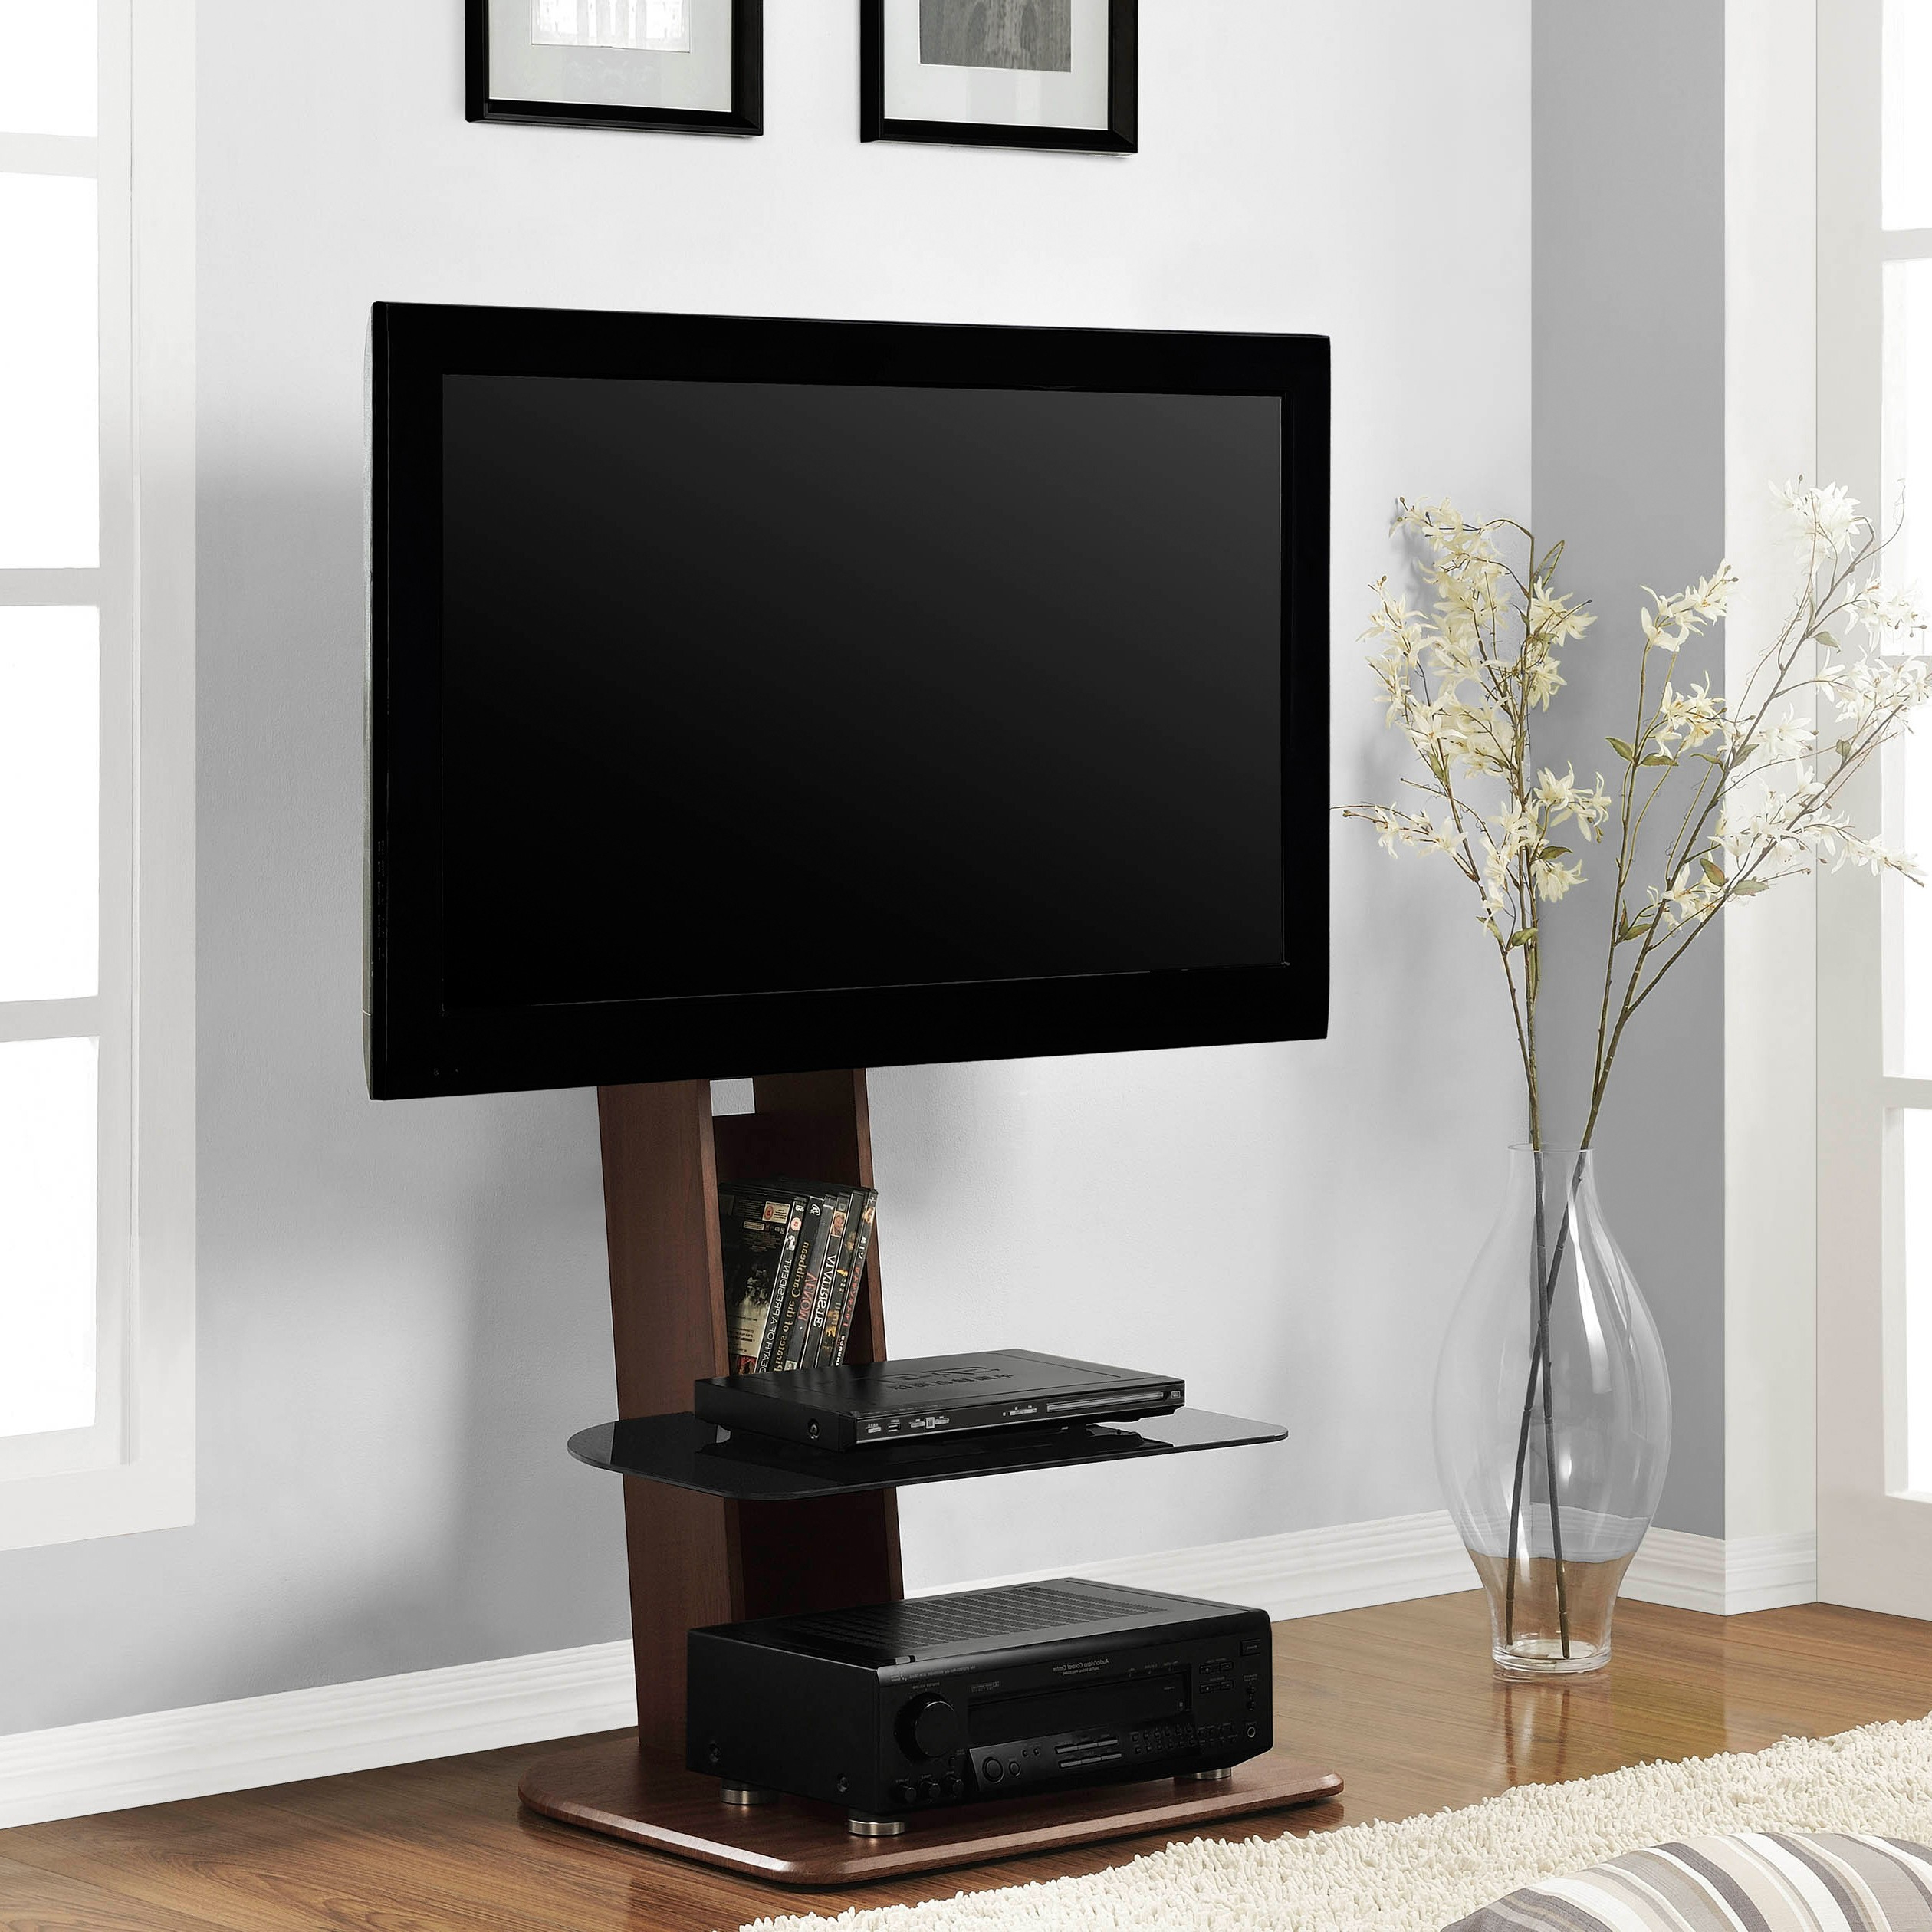 Recent Fulgurant Tv Cabinet Wall Mounted Flat Screen Tv Stand Wall Mount In Wall Mounted Tv Stands For Flat Screens (View 11 of 20)